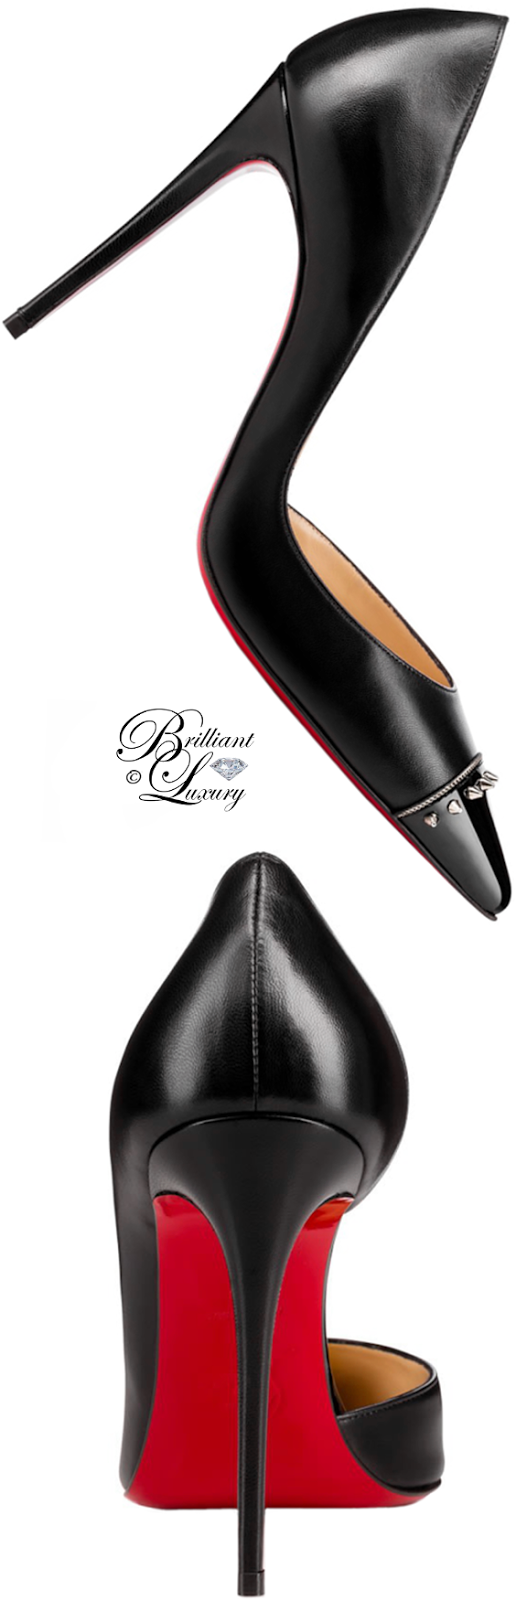 Brilliant Luxury ♦ Christian Louboutin Culturella Spiked Half D'Orsay Red Sole Pump